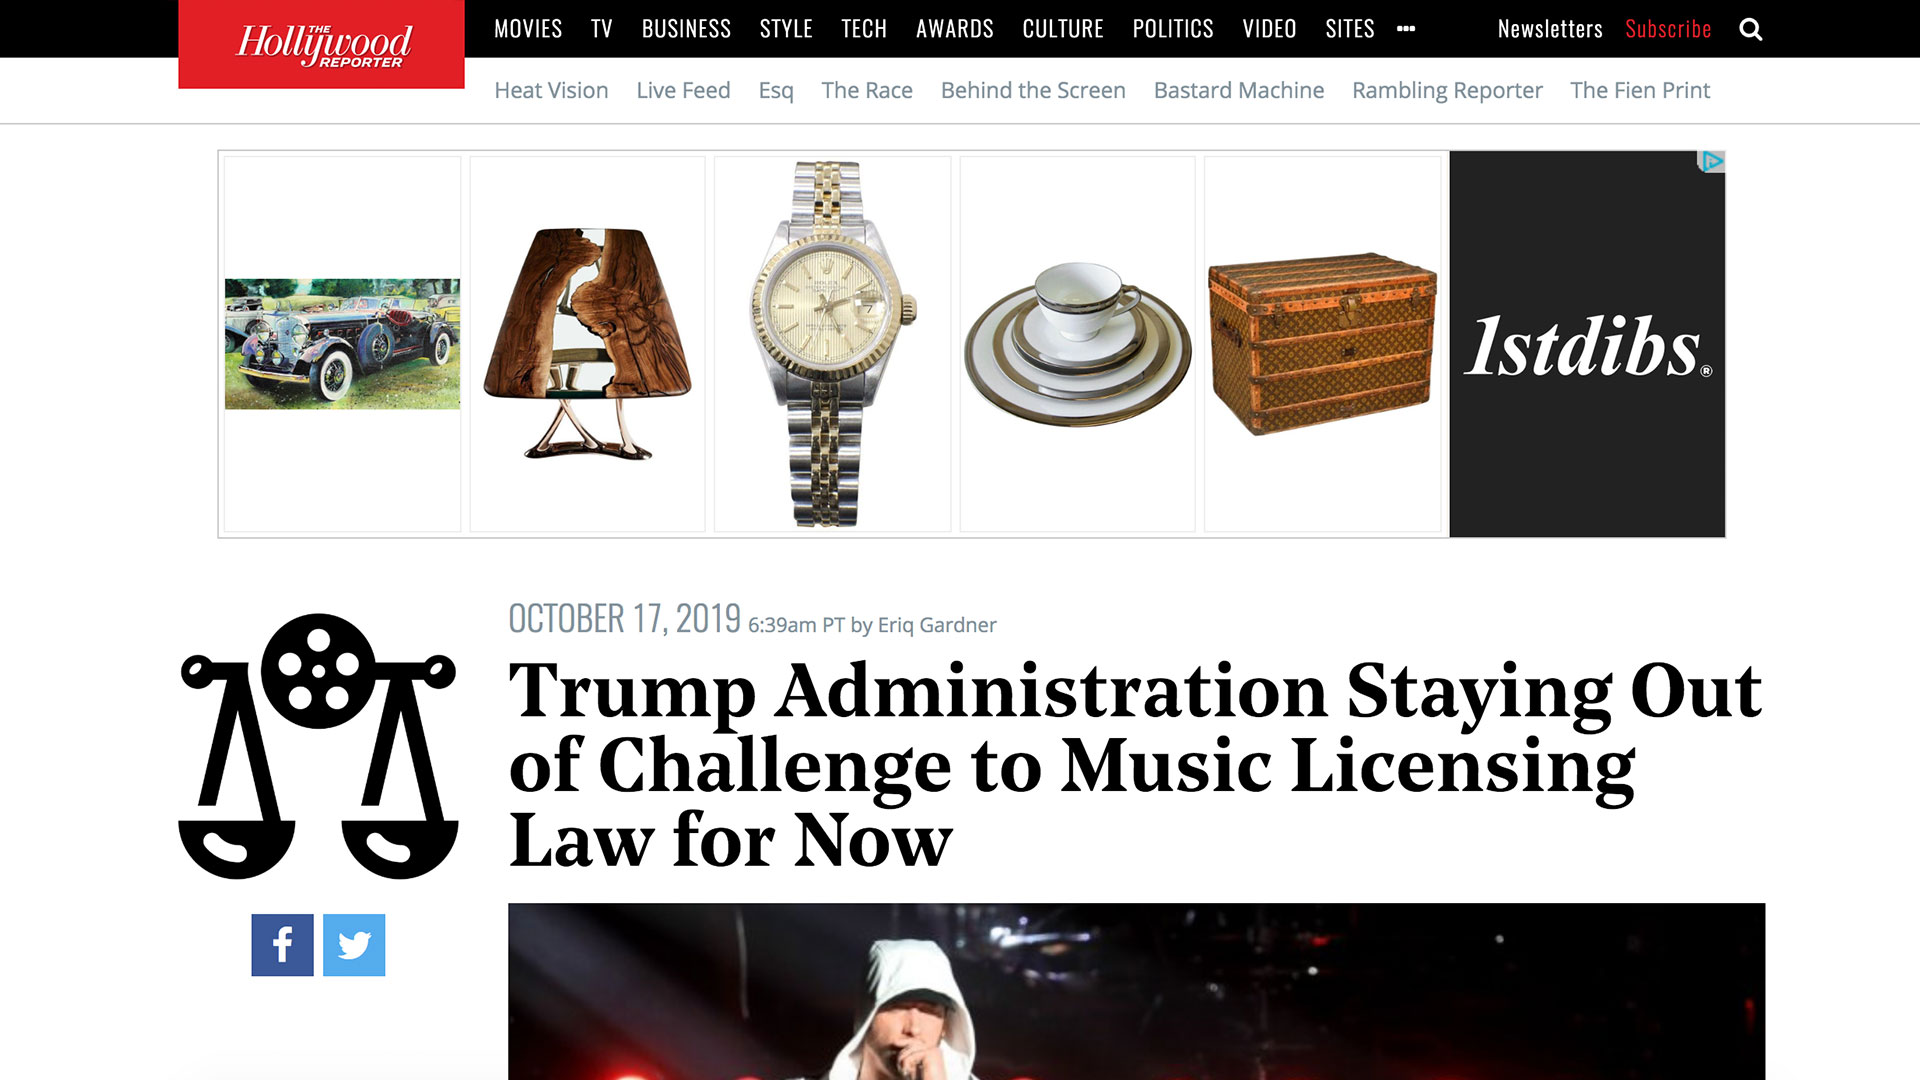 Fairness Rocks News Trump Administration Staying Out of Challenge to Music Licensing Law for Now